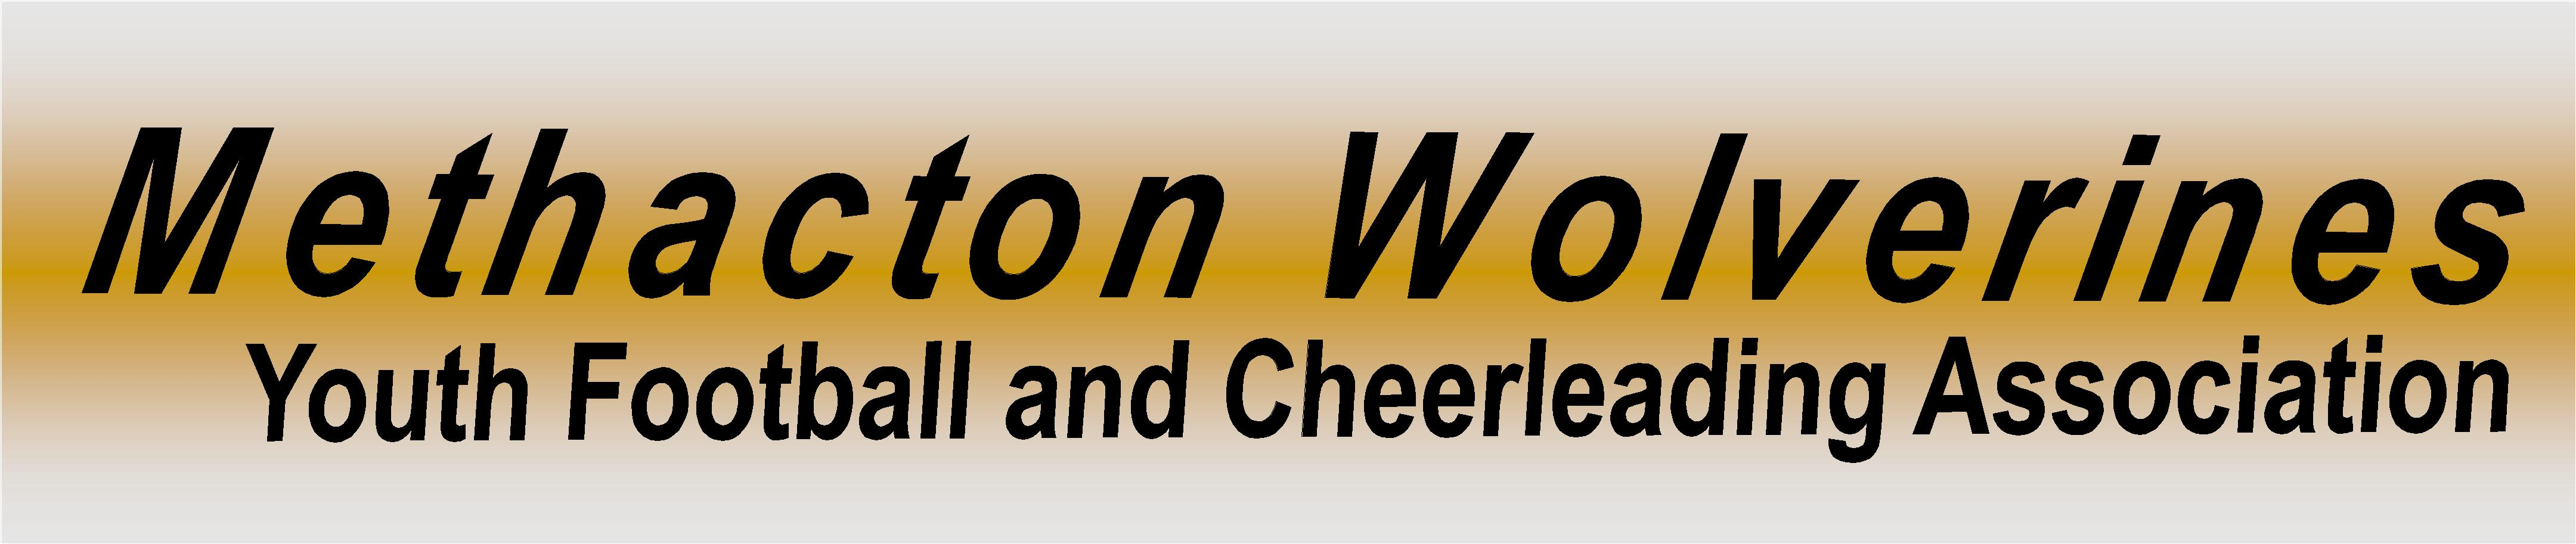 <B>METHACTON WOLEVRINES FOOTBALL & CHEER</b>